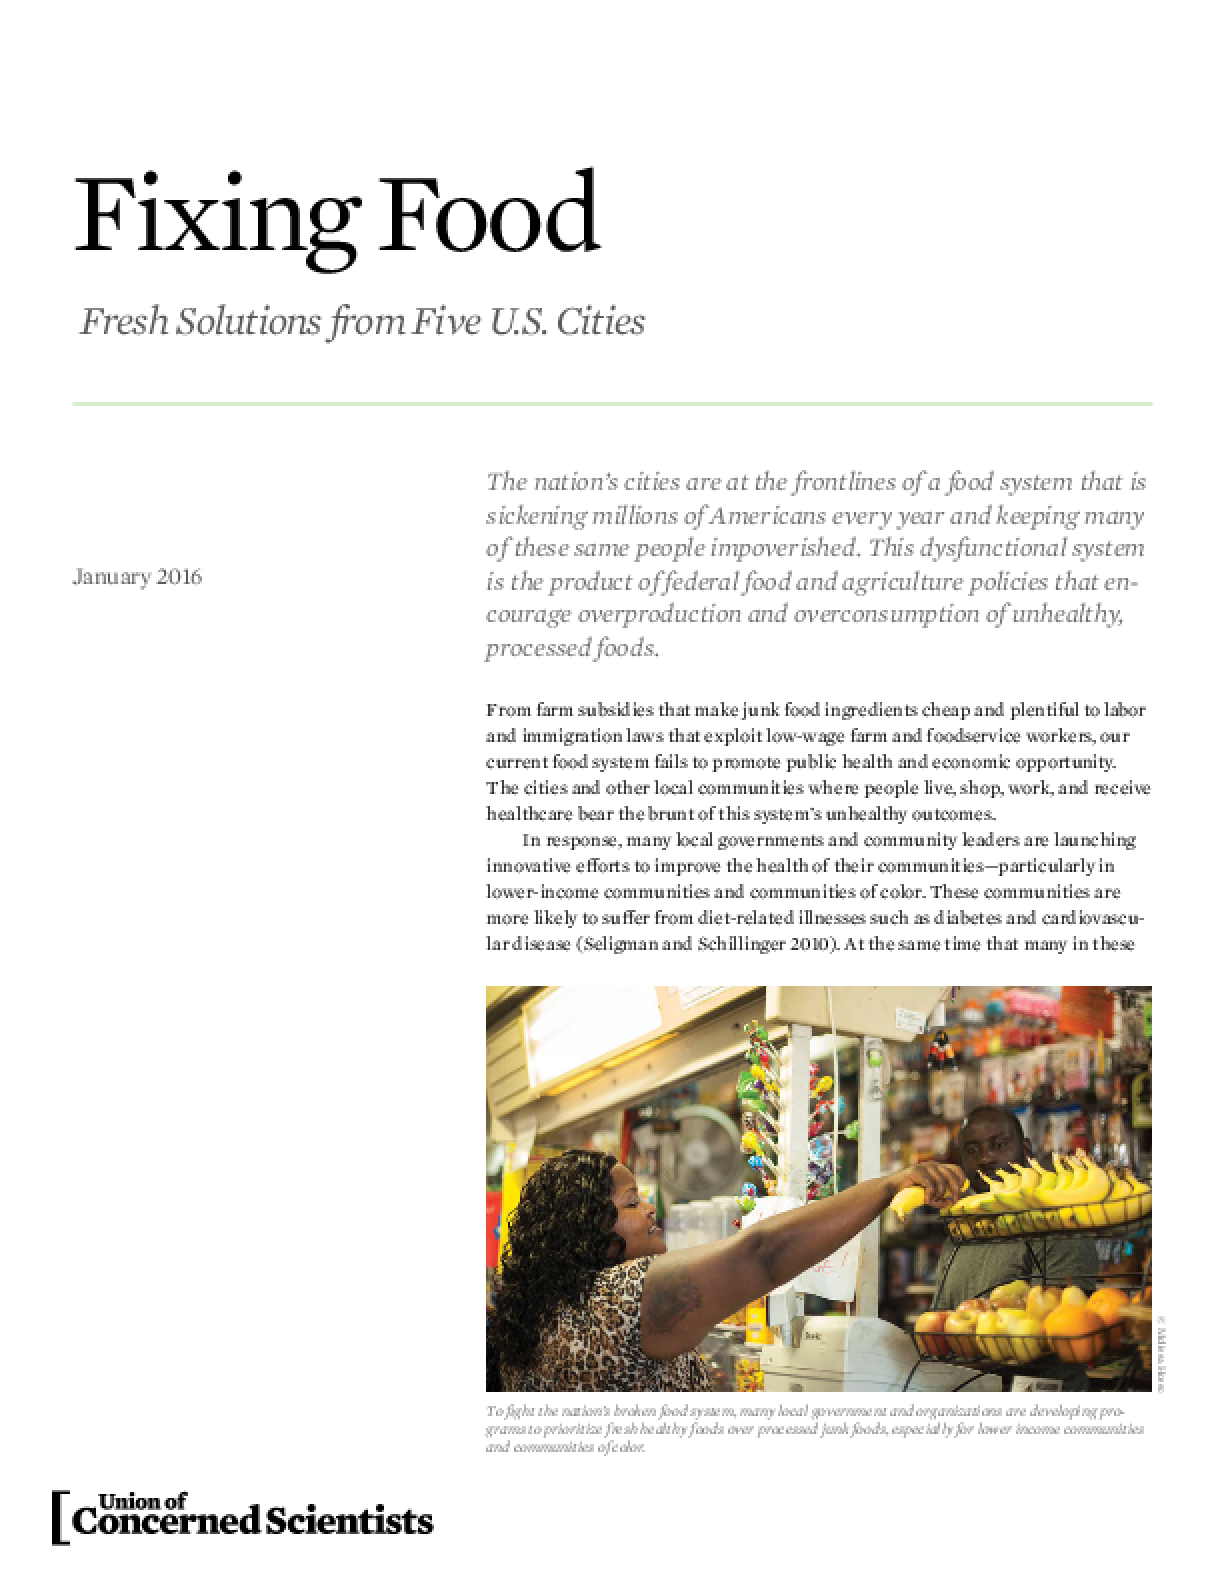 Fixing Food: Fresh Solutions from Five U.S. Cities (2016)